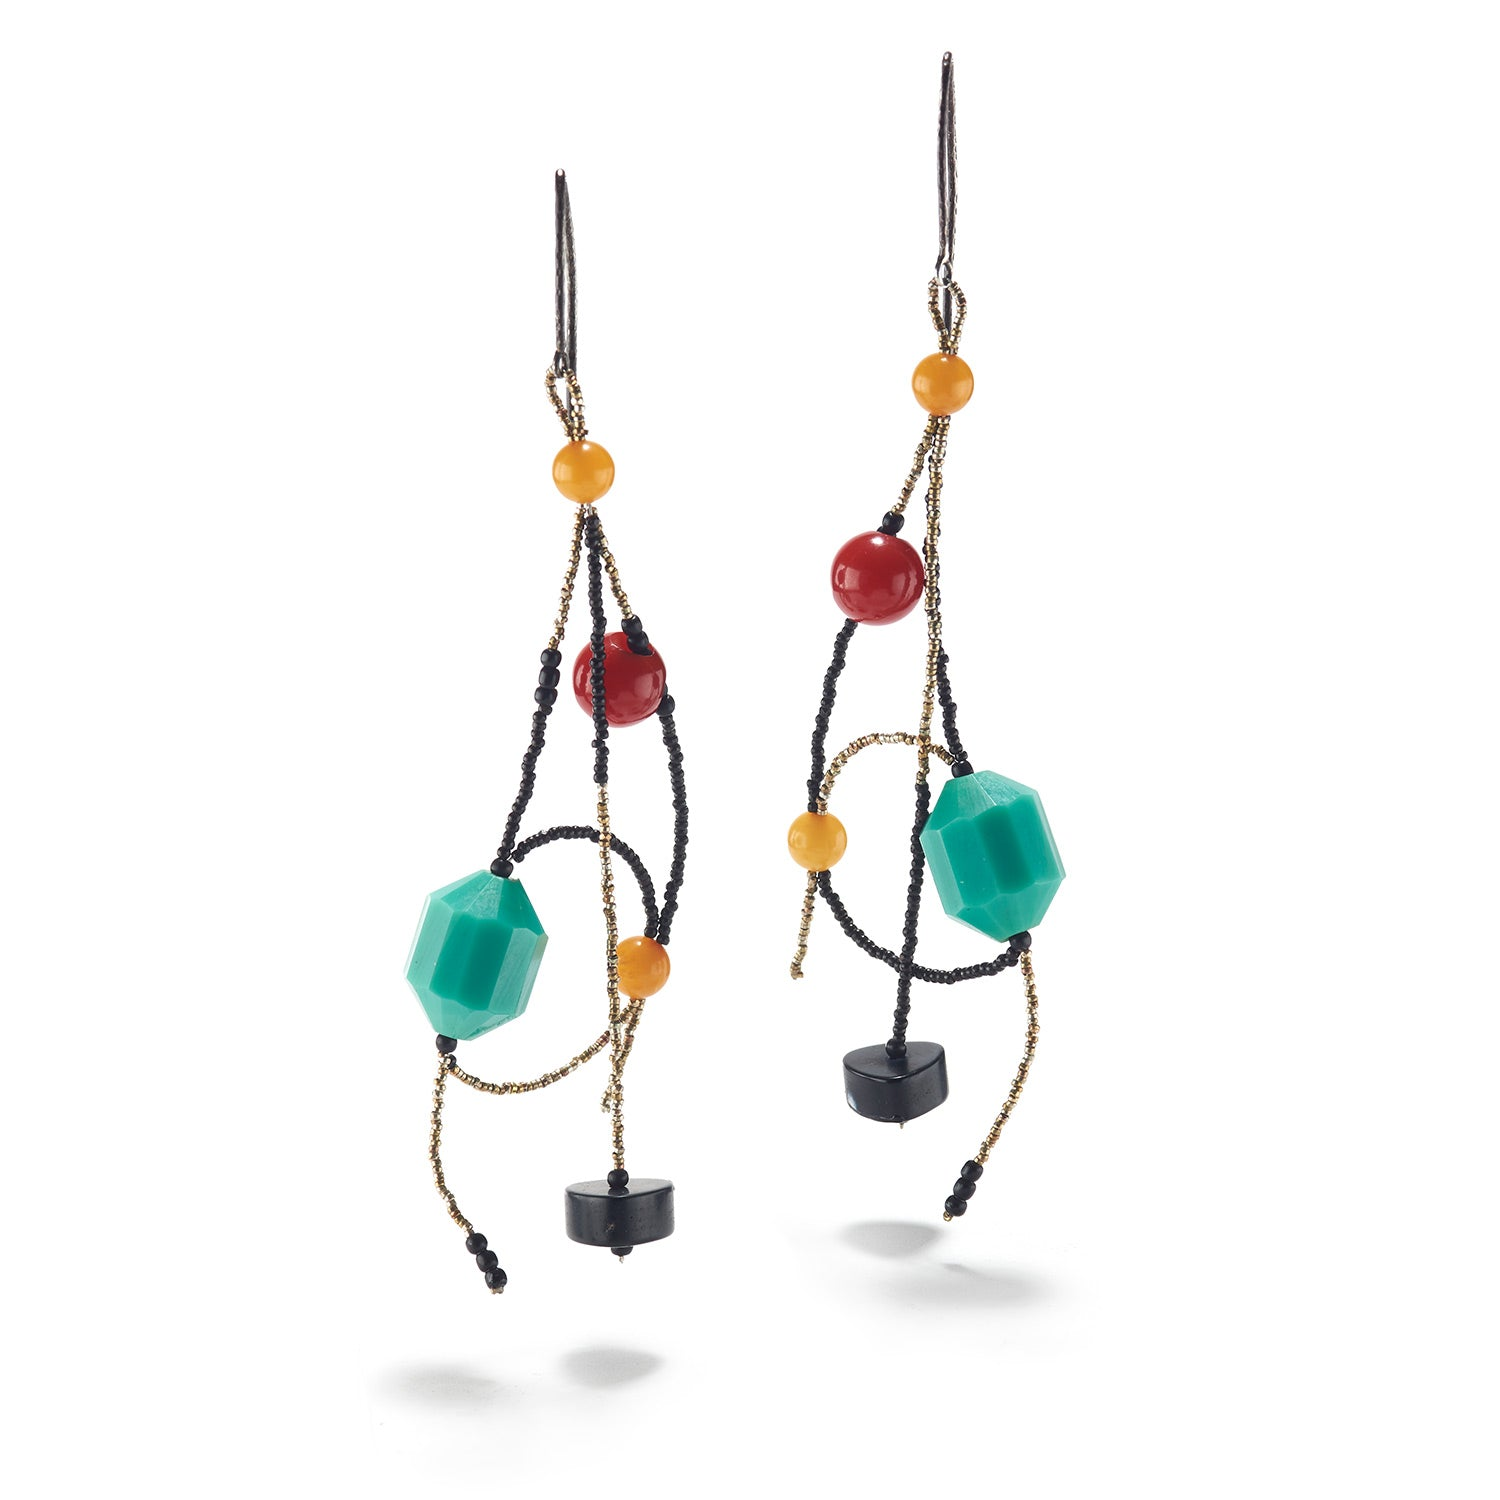 Turquoise, Red & Onyx Bakelite Earrings